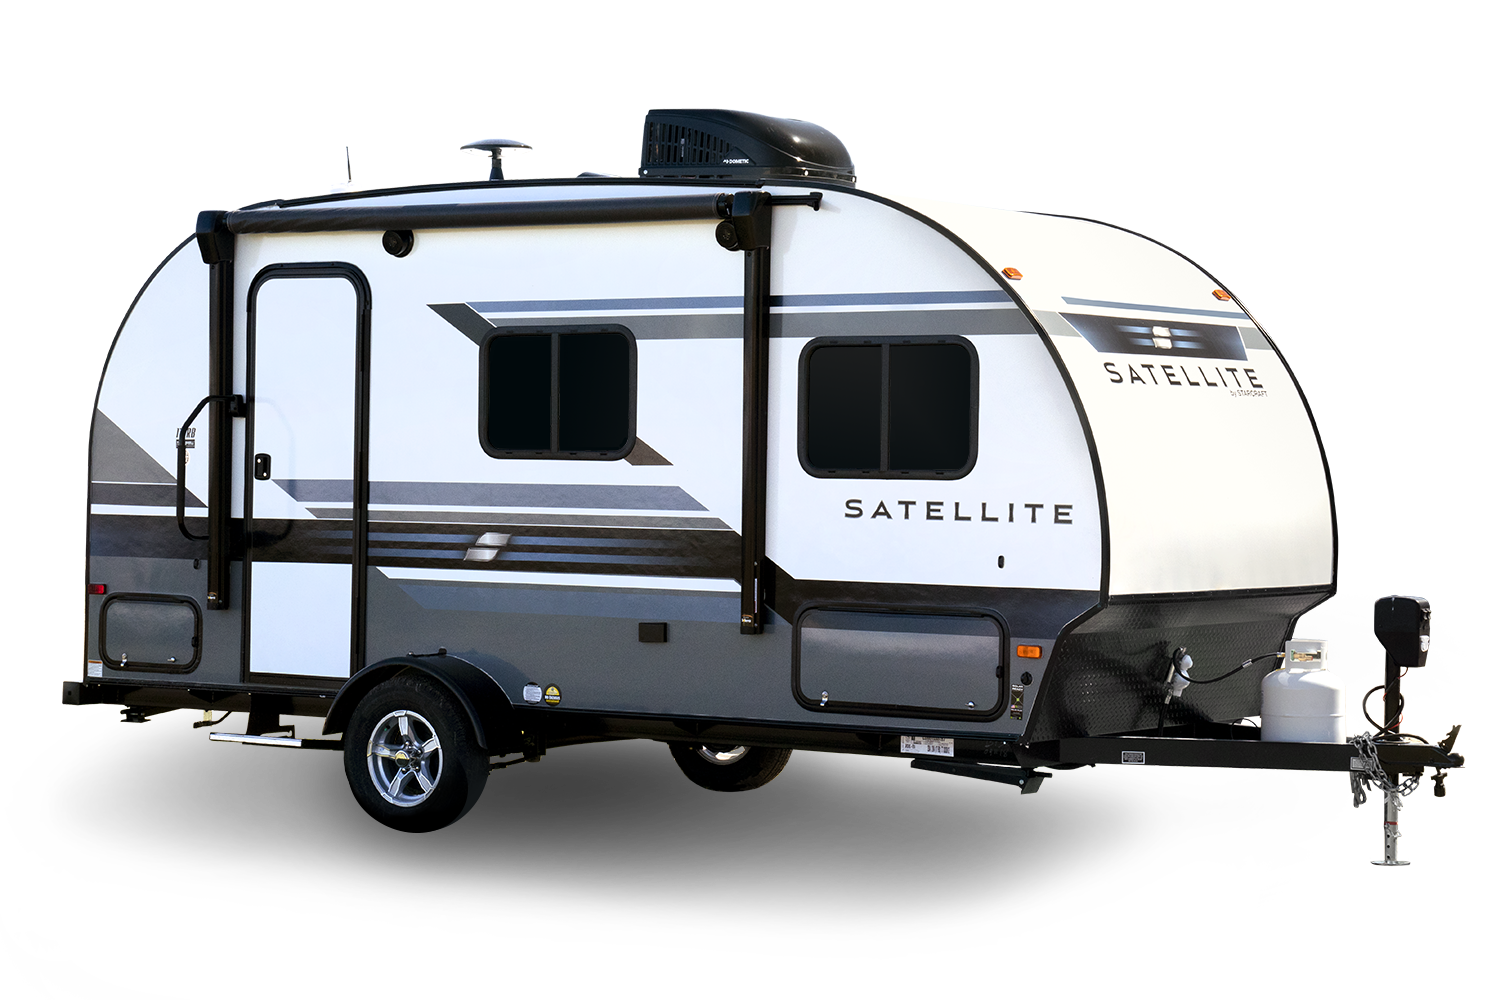 Trailer Camping That Will Make You A Happy Travel Trailer Floor Plans Lightweight Camping Trailers Camping Trailer